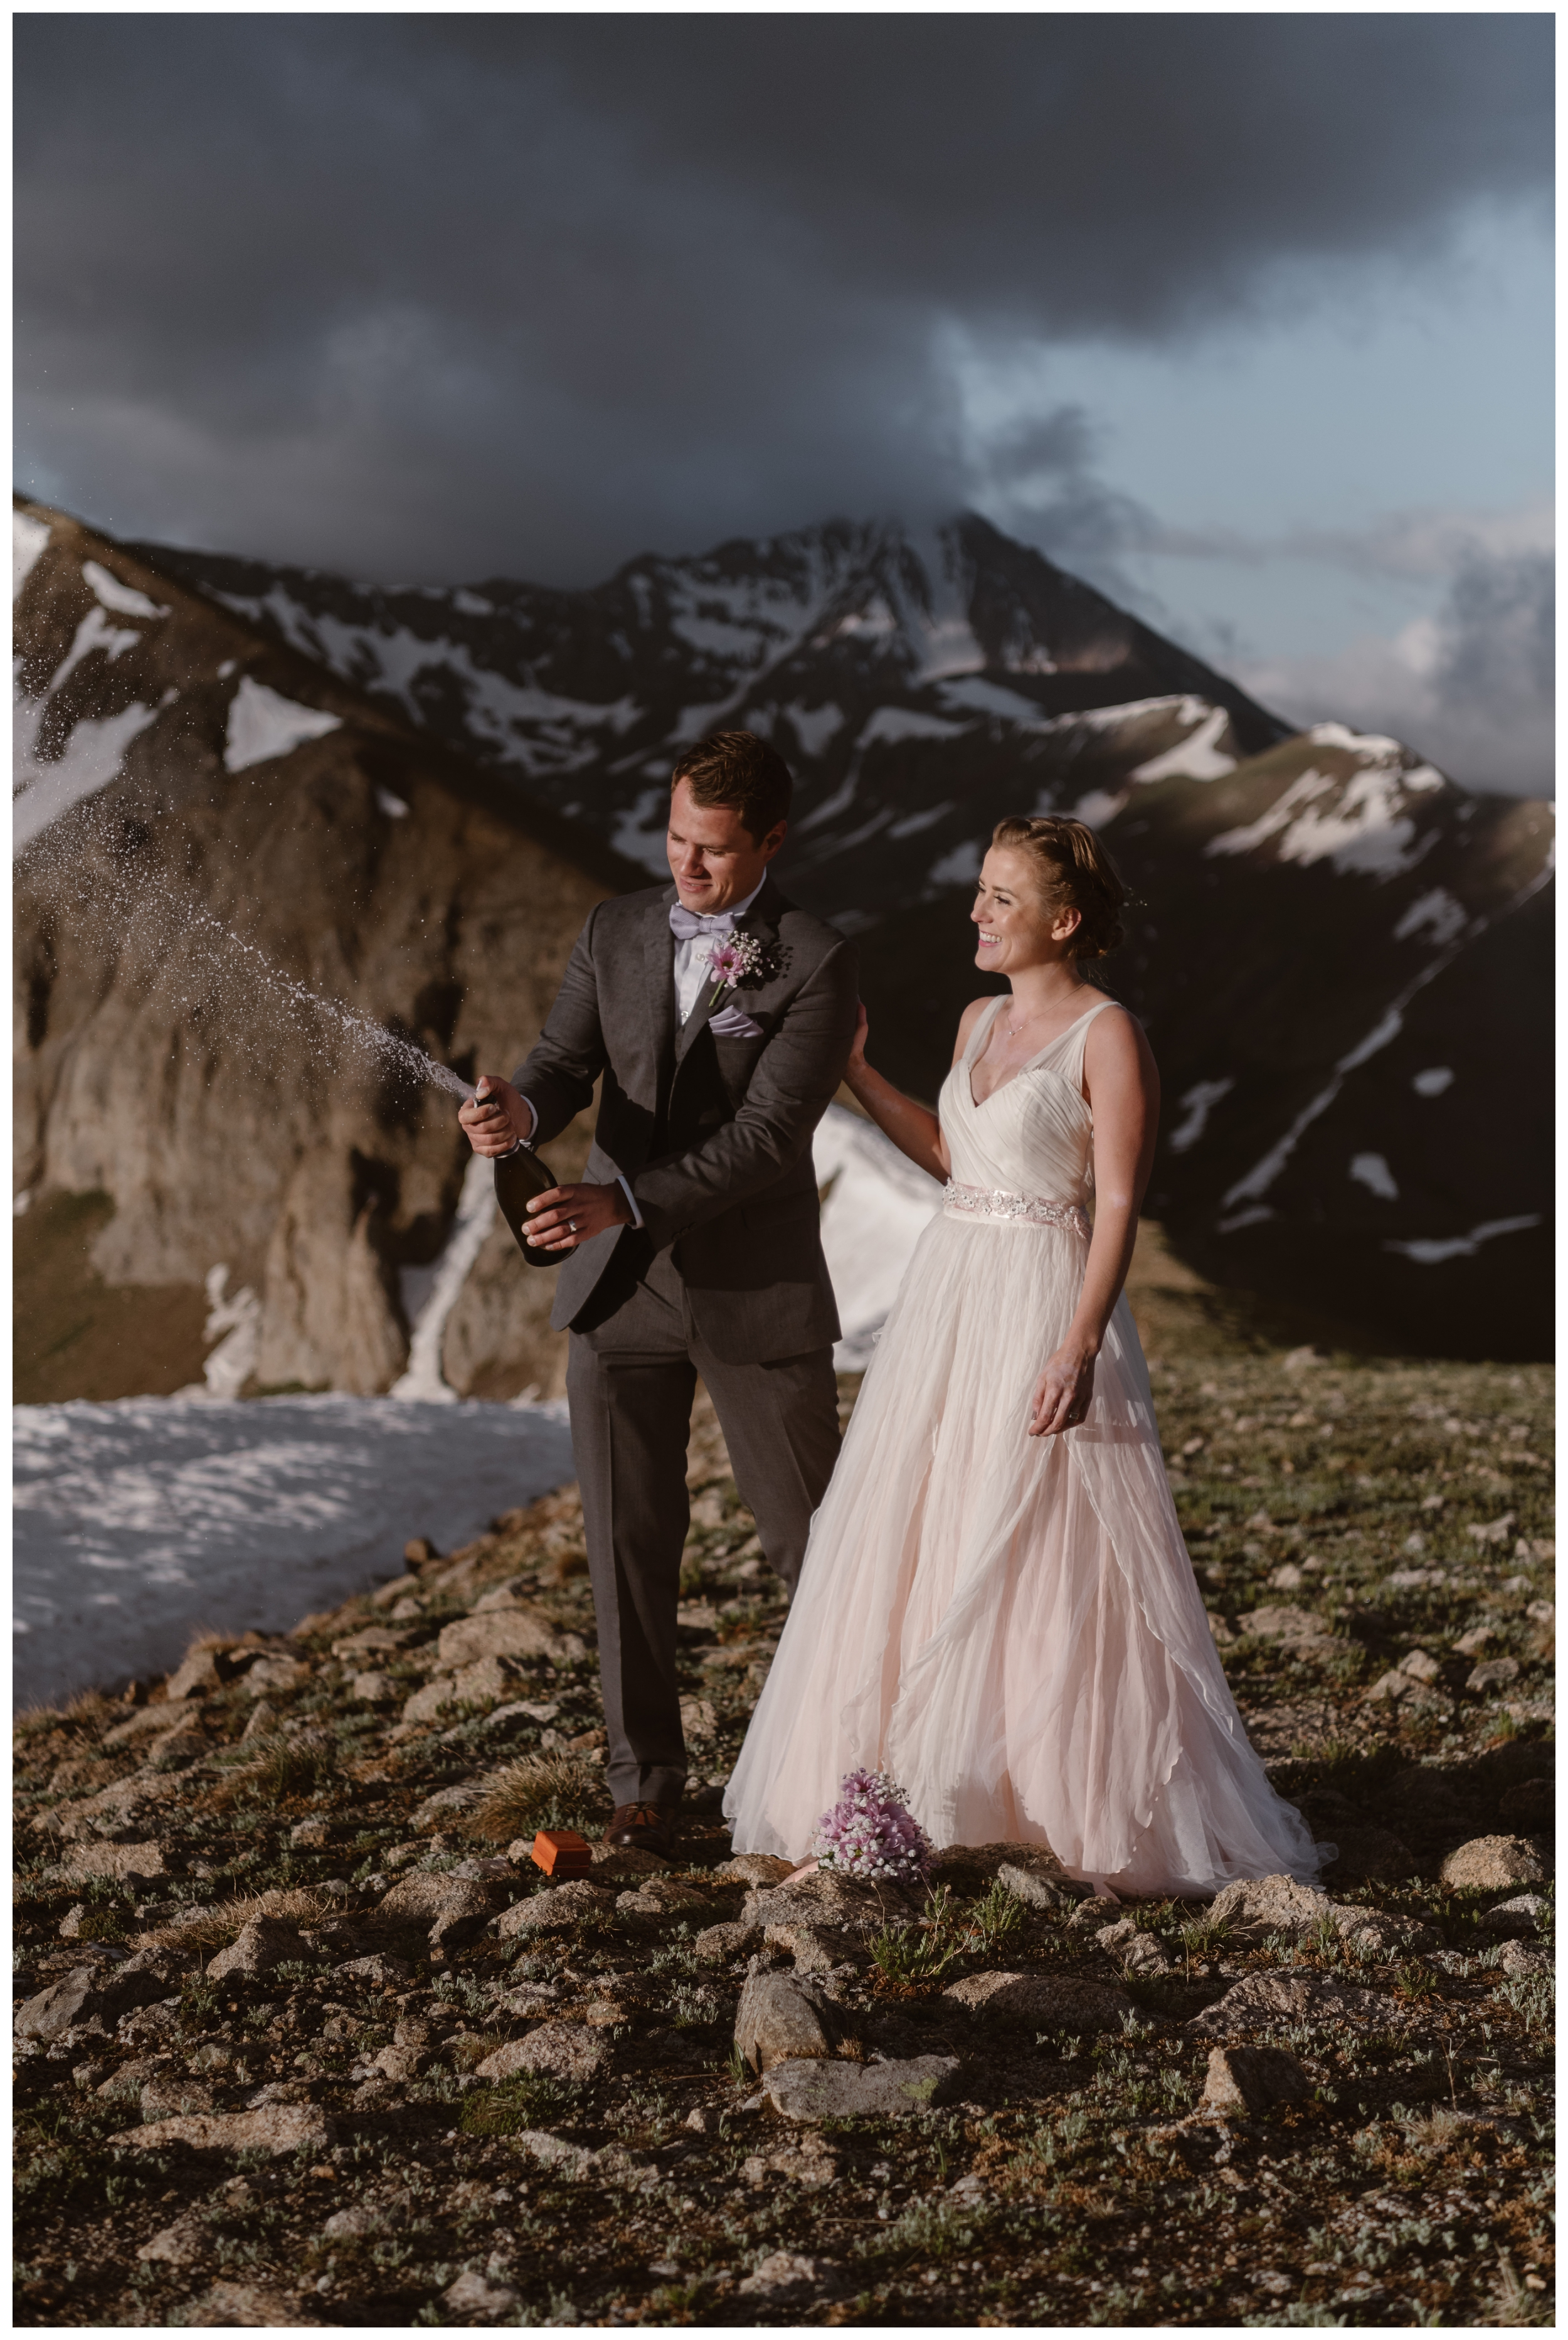 Marcela and Vasily pop open a bottle of champagne after their intimate self solemnizing ceremony that they hiked to the top of Independence Pass for. Photo by Maddie Mae, Adventure Instead.